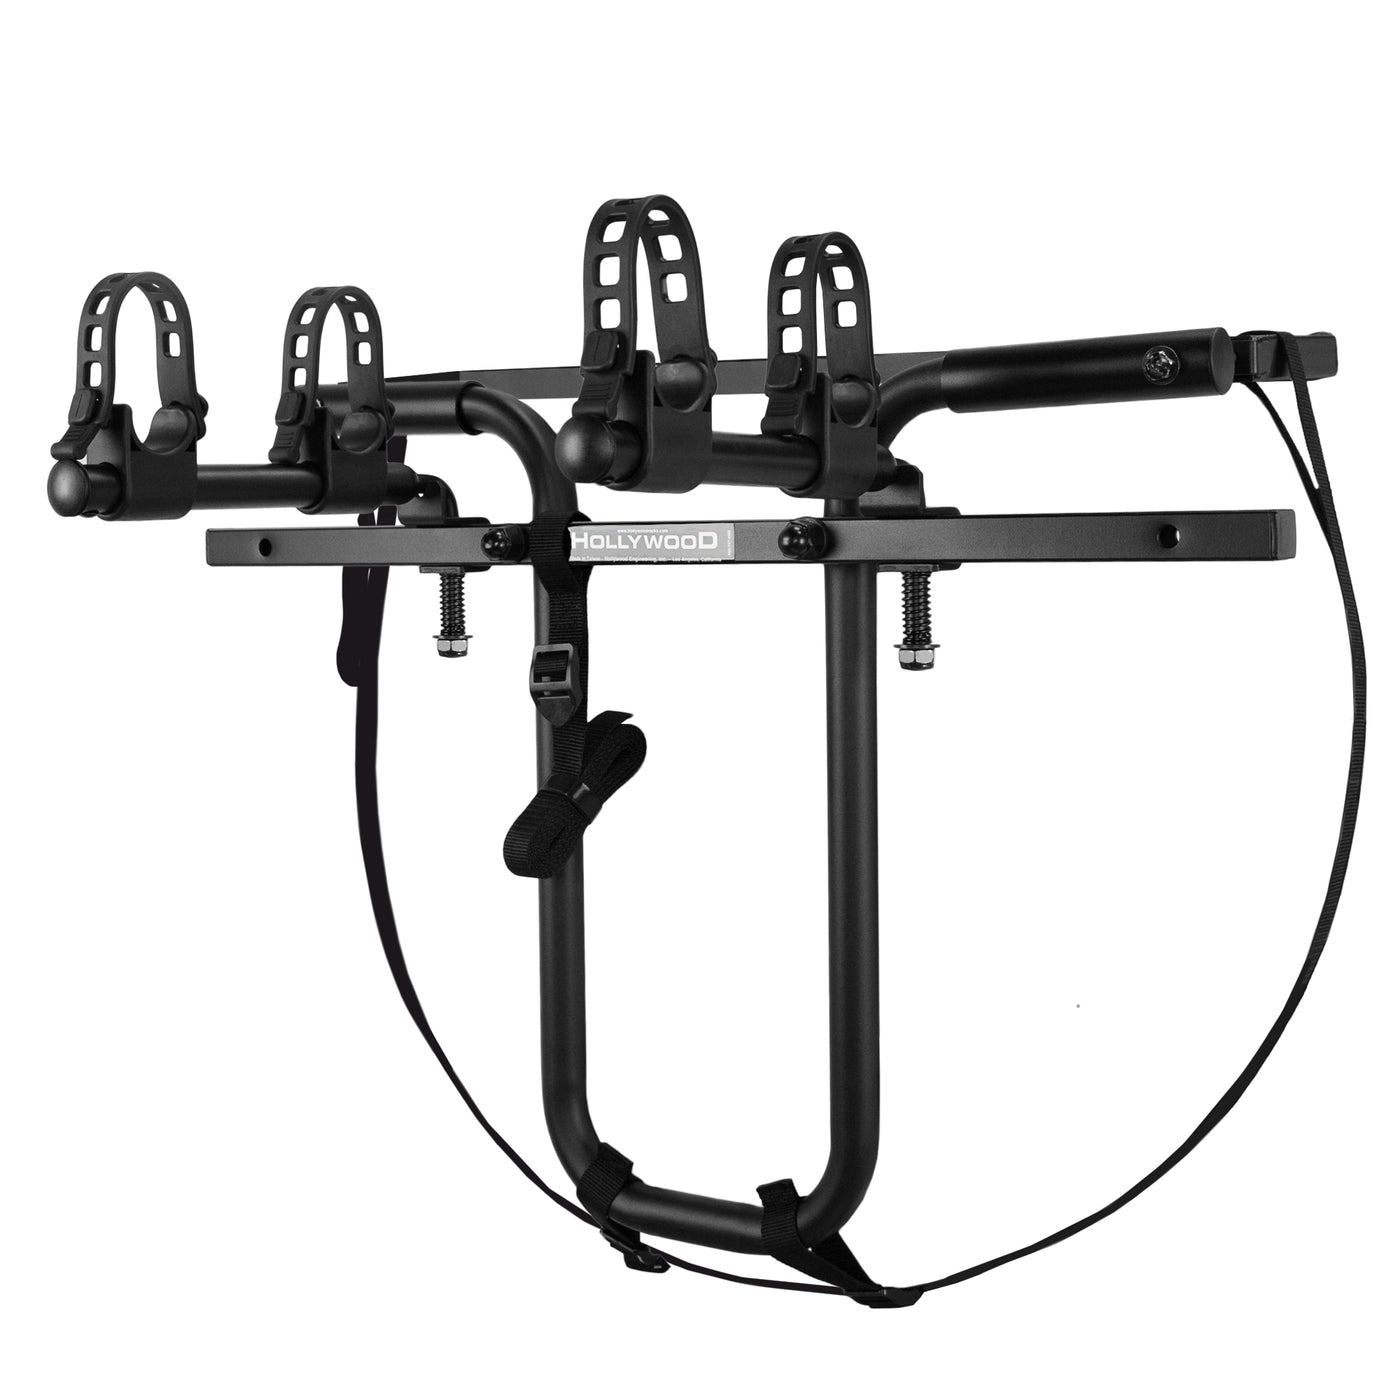 Black Hollywood Racks F7 Spare Tyre Mount 2 Bike Car Rack